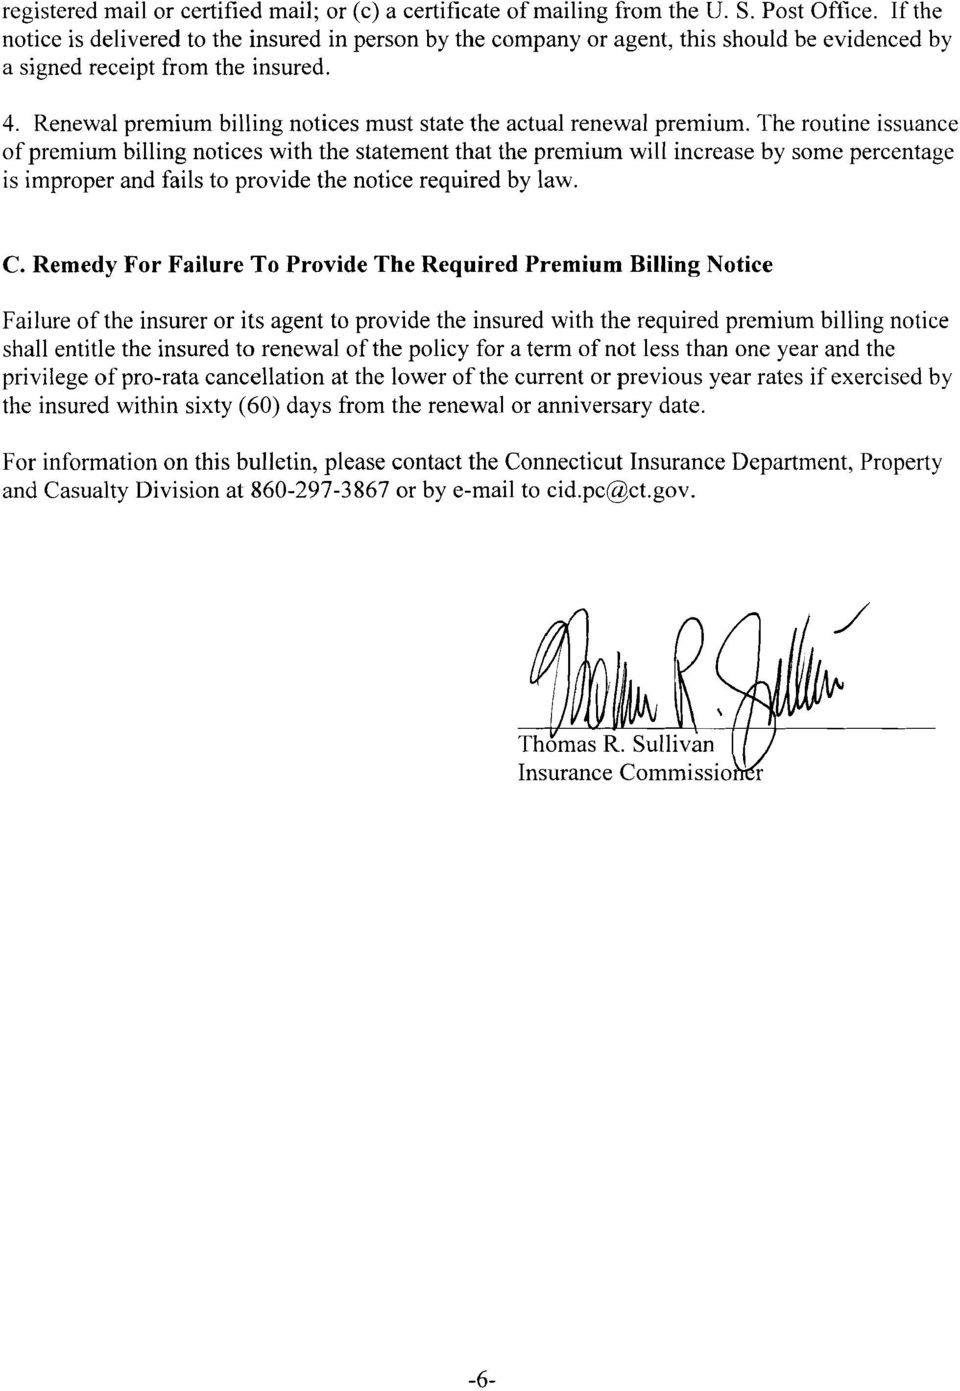 Renewal premium billing notices must state the actual renewal premium.